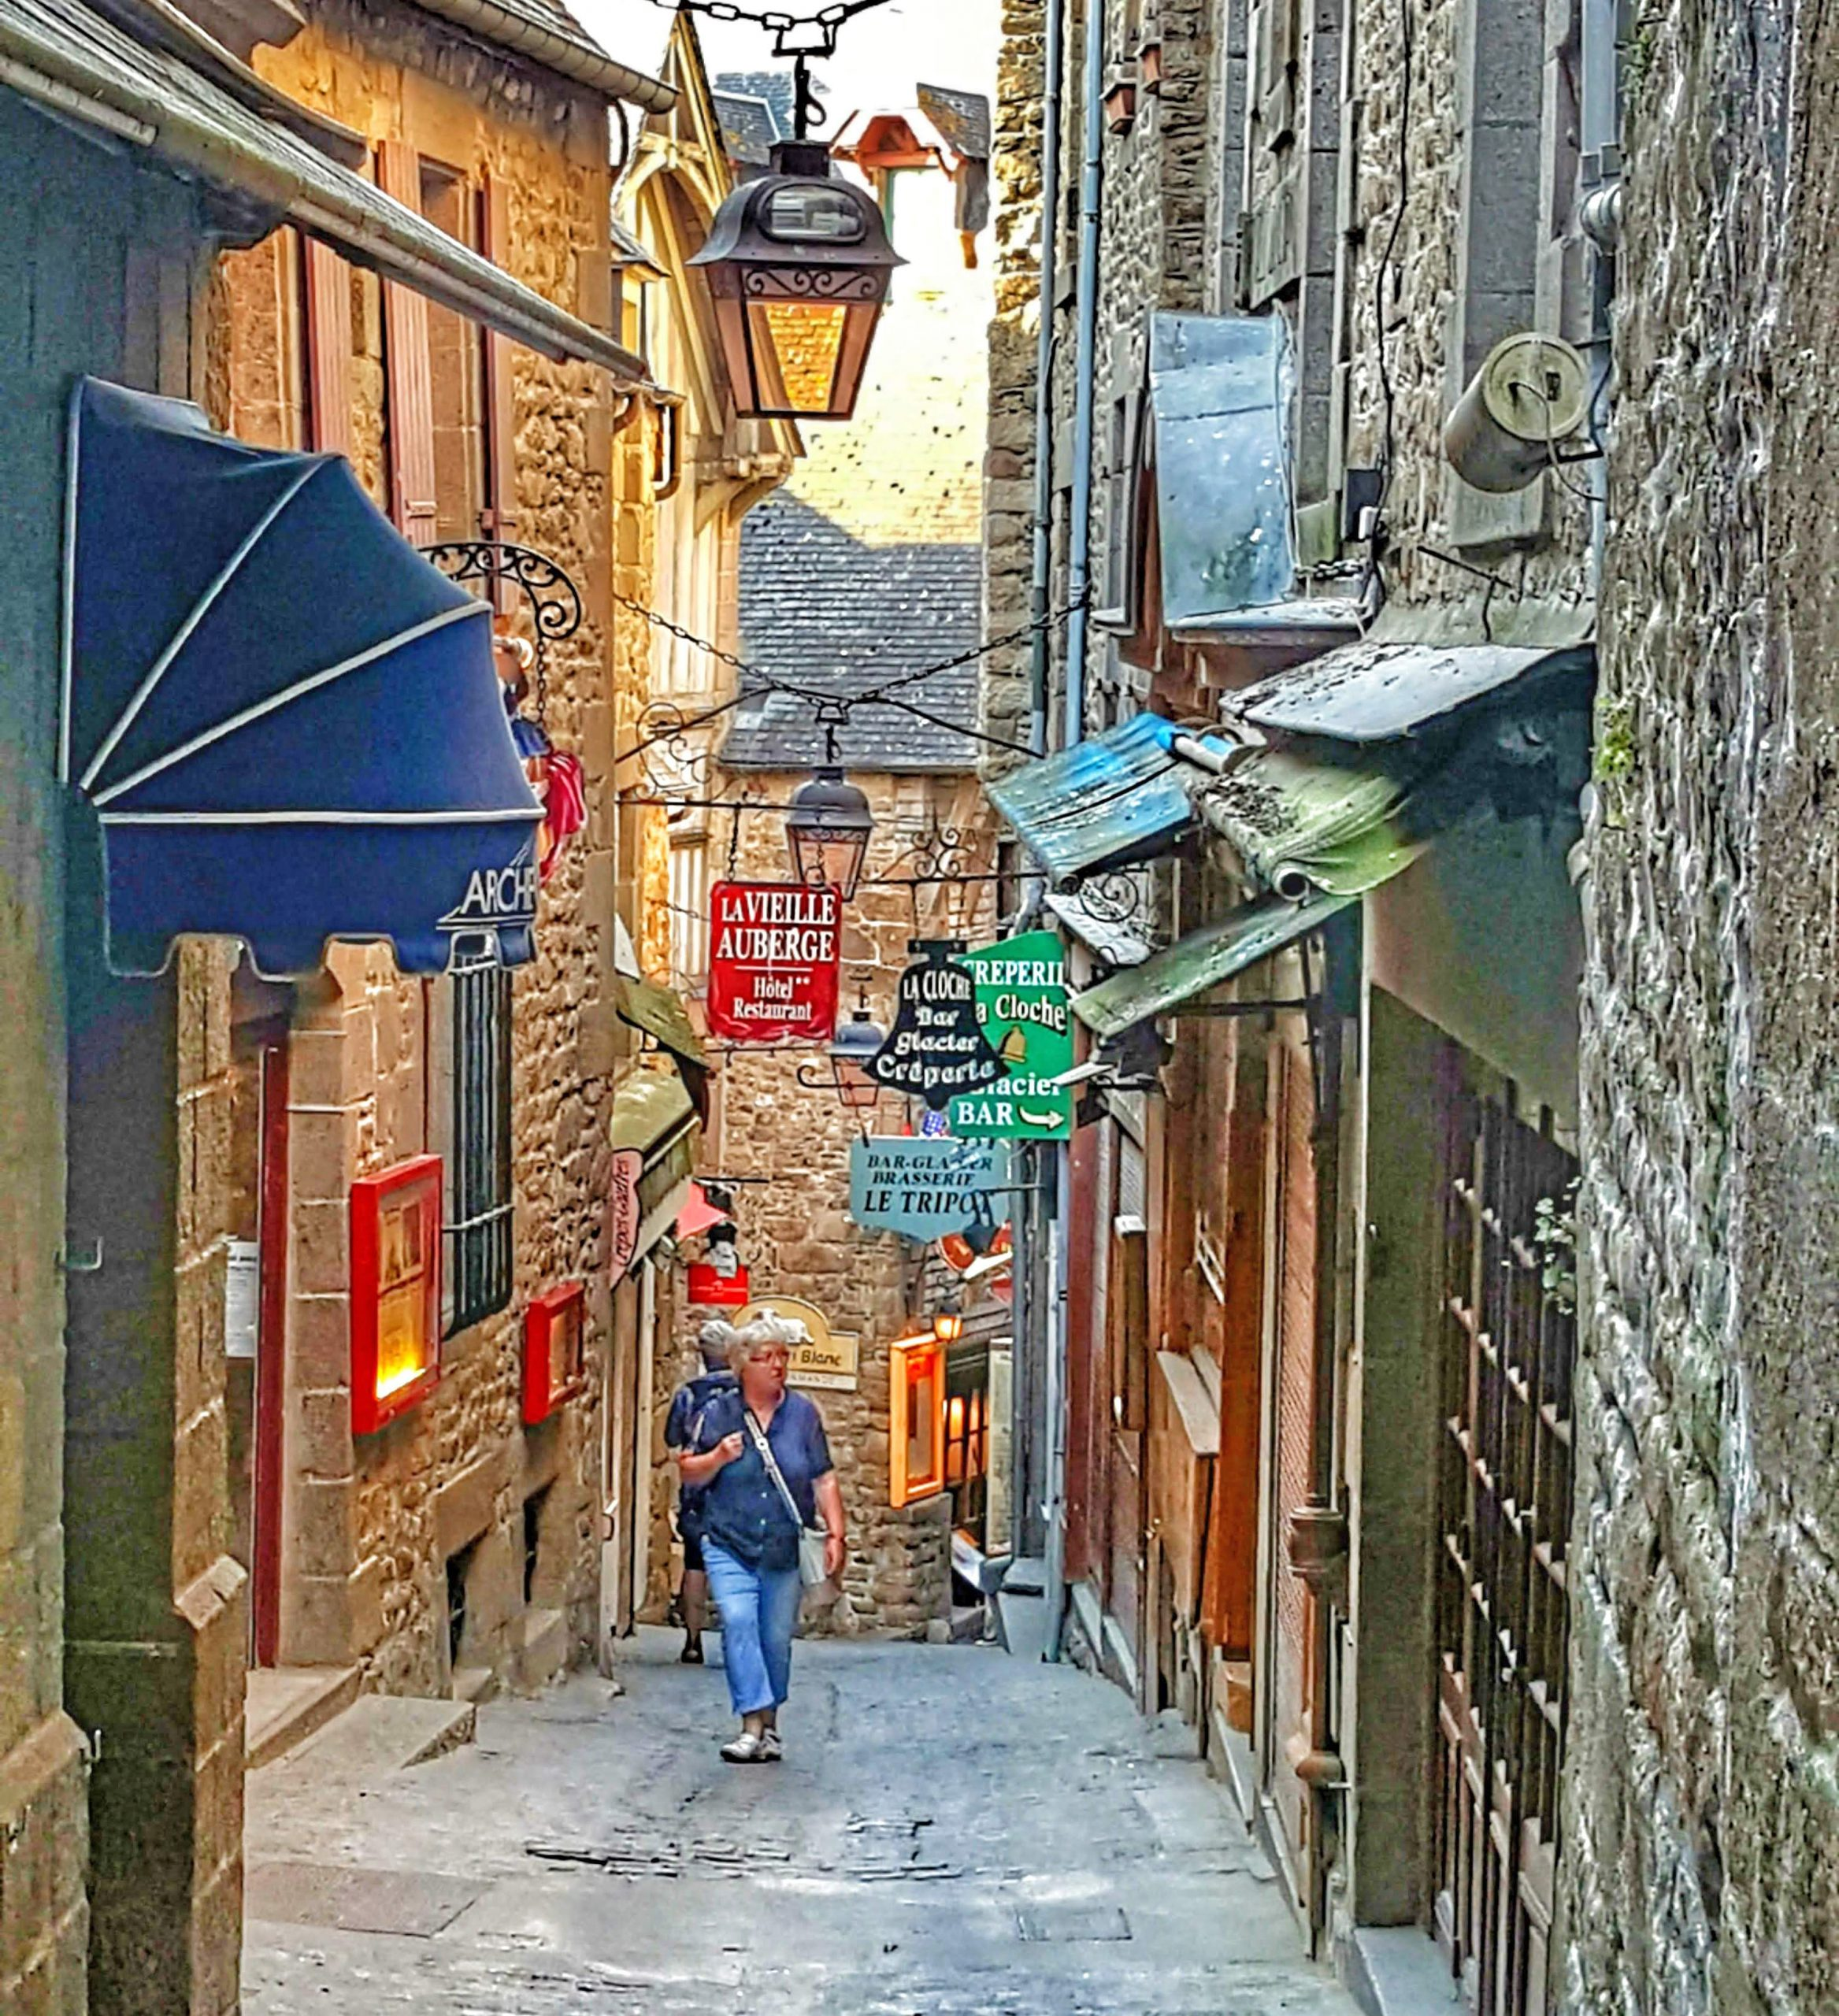 The main street in Mont St. Michel